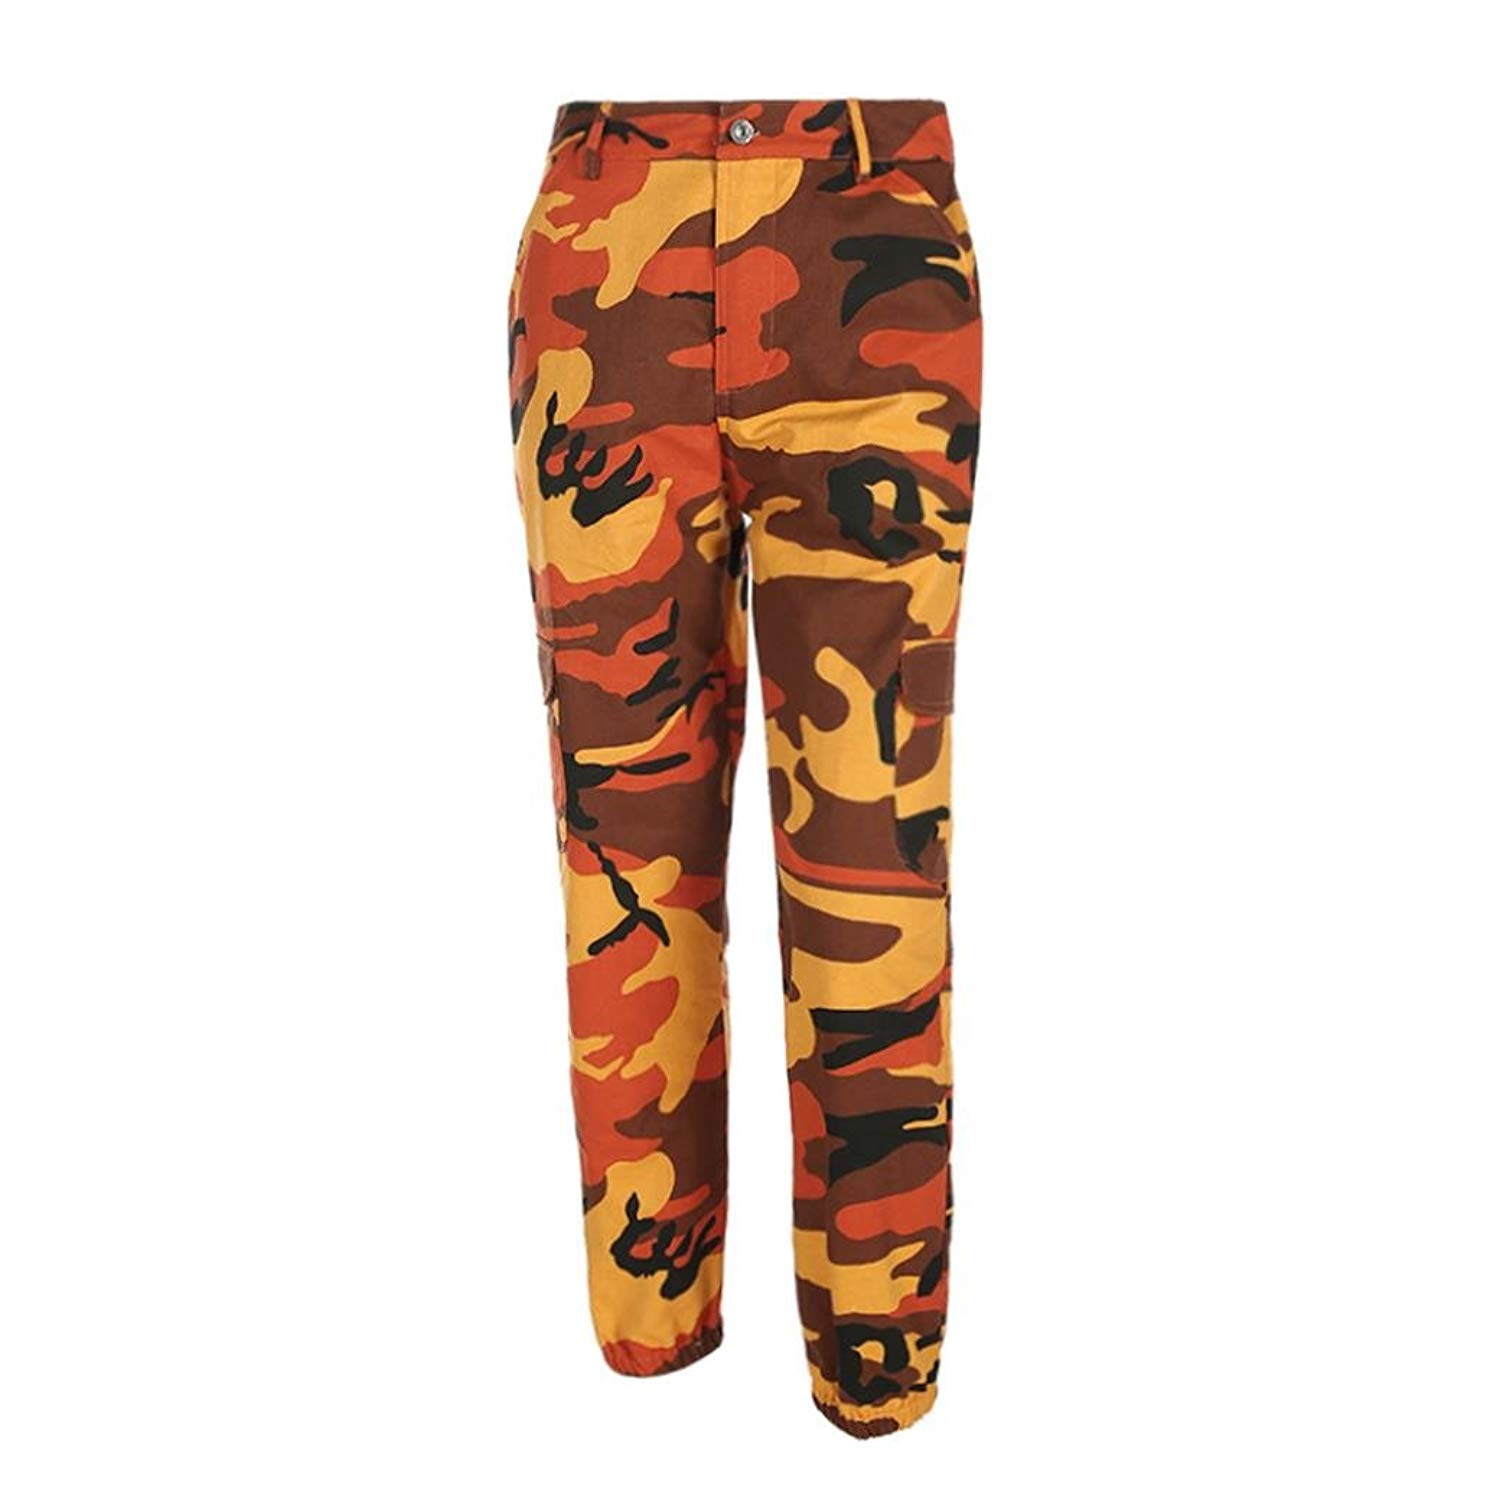 9b77bfd2f0d Get Quotations · Wqueen New Camouflage Printed Jeans Harem Pants Women  Sports Camo Cargo Pants Outdoor Casual Camouflage Trousers